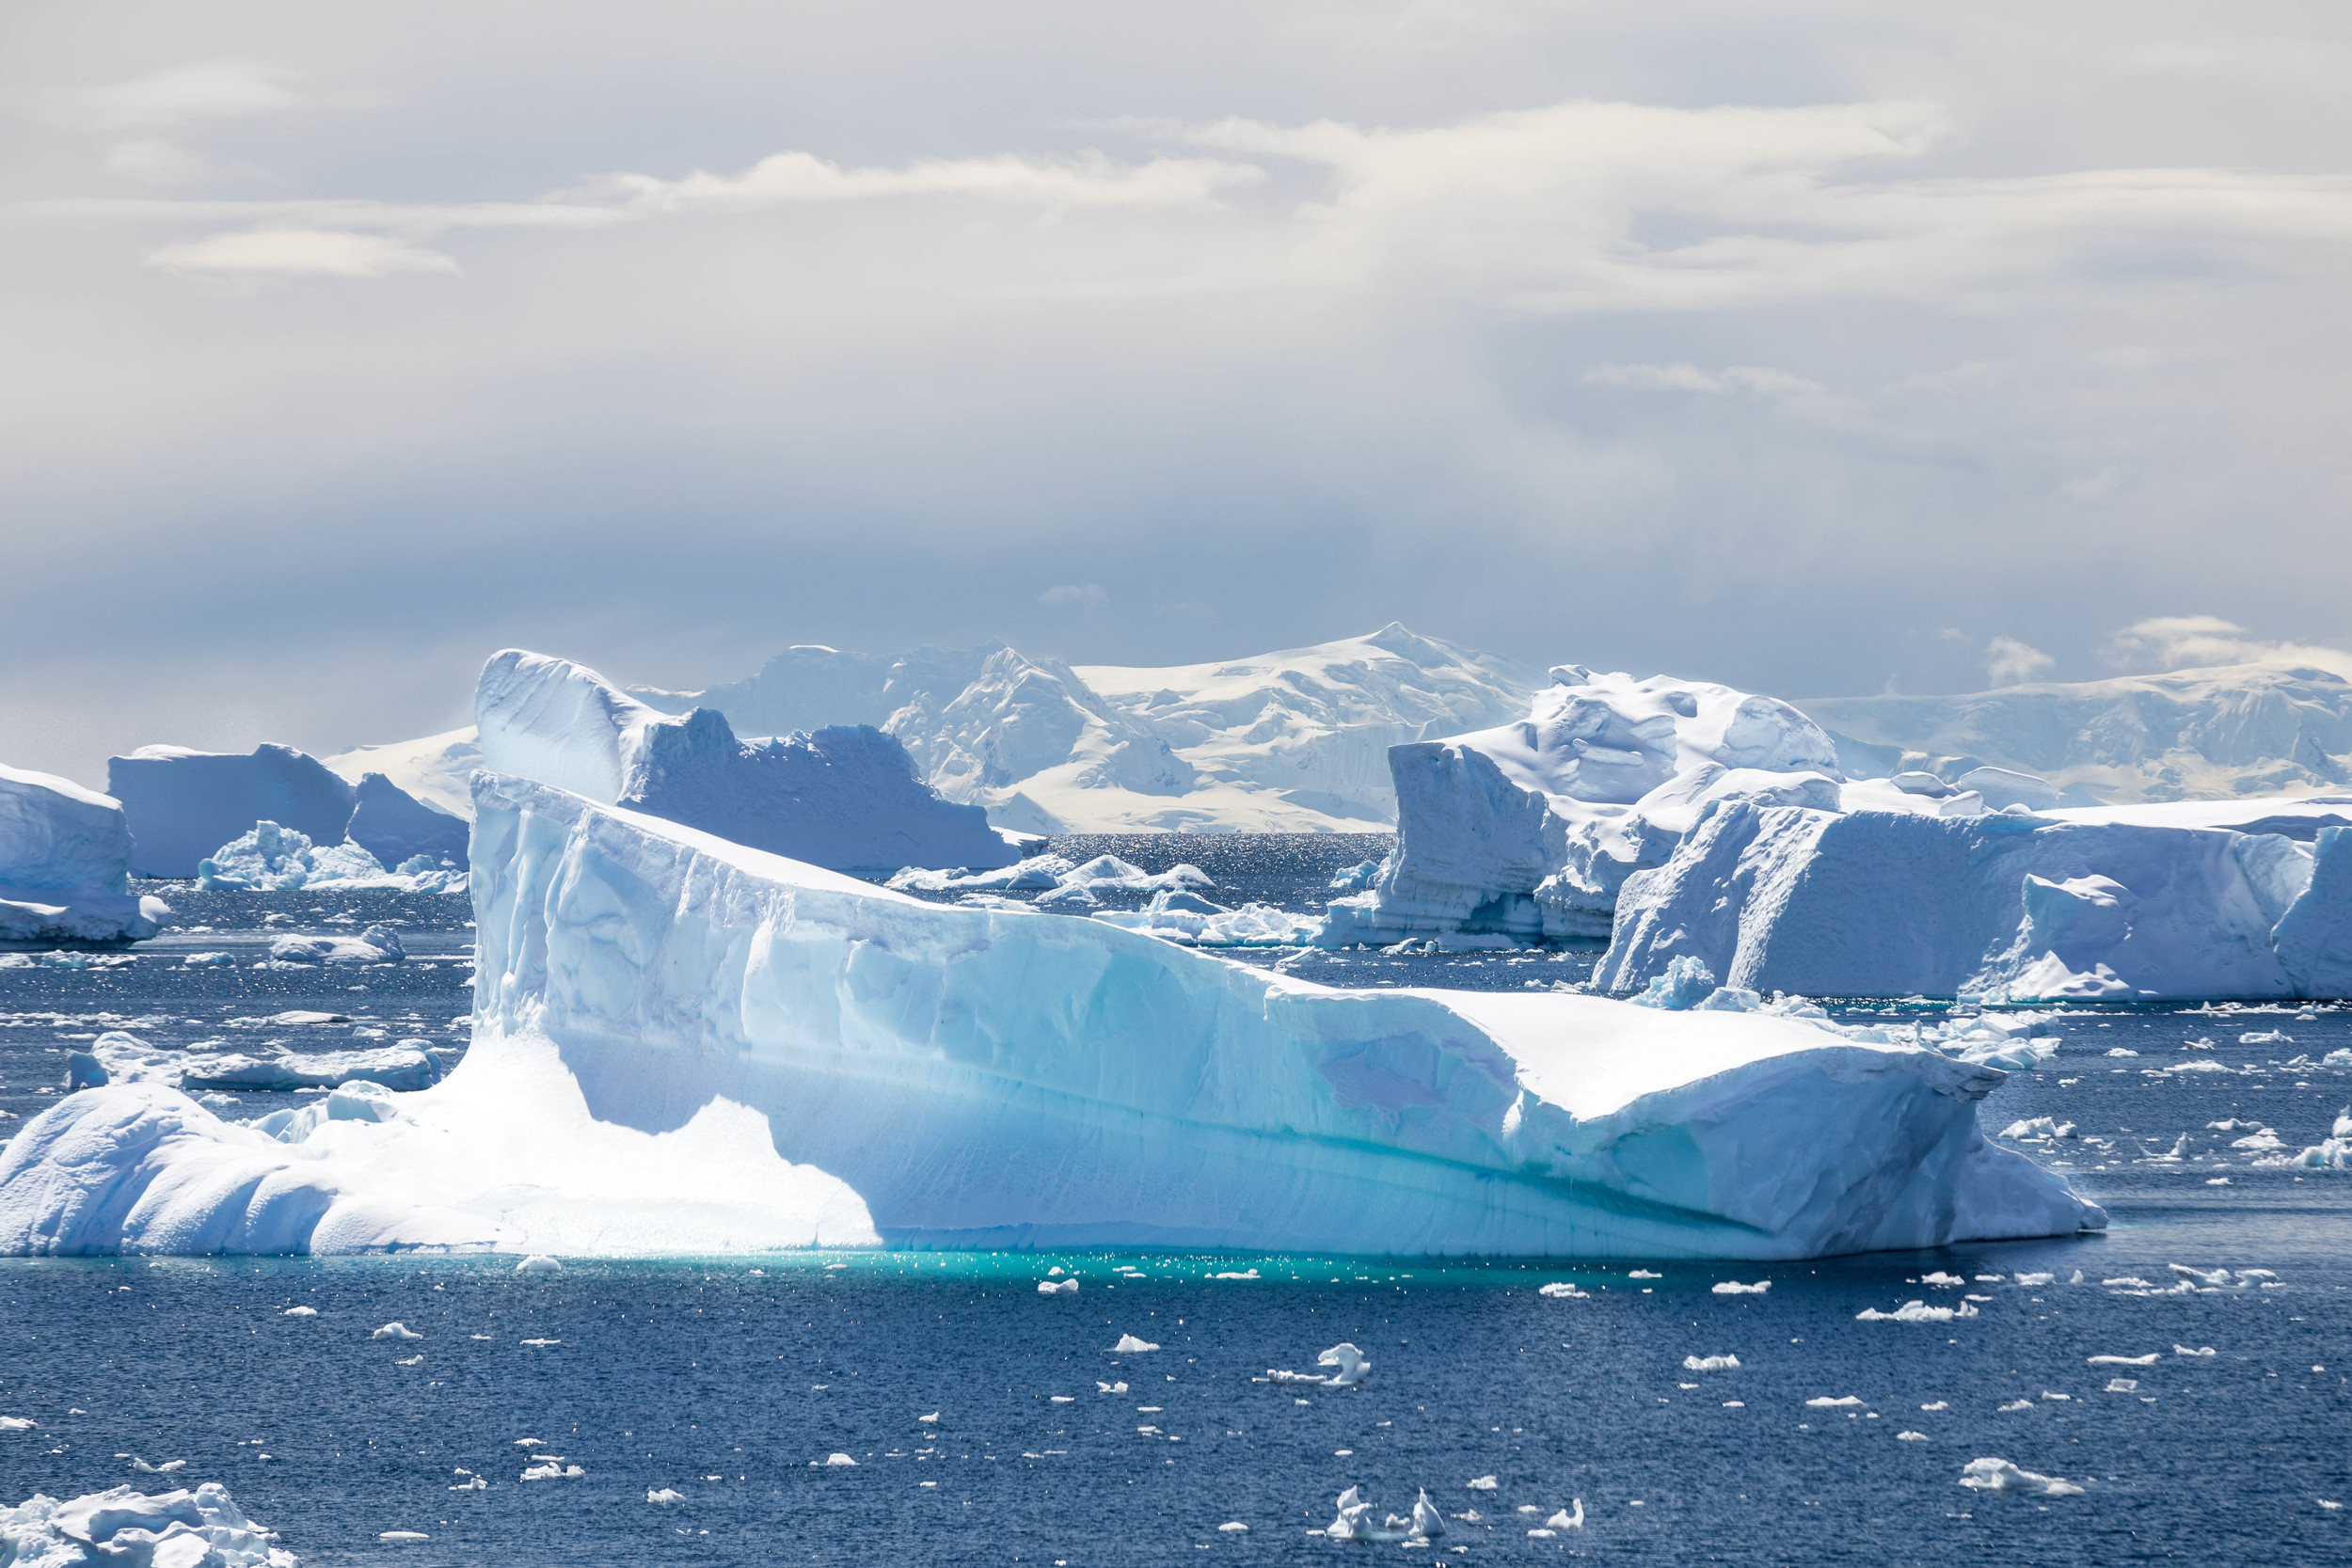 Incredible shapes and colors of the ice as we sail intoCharlotte Bay.